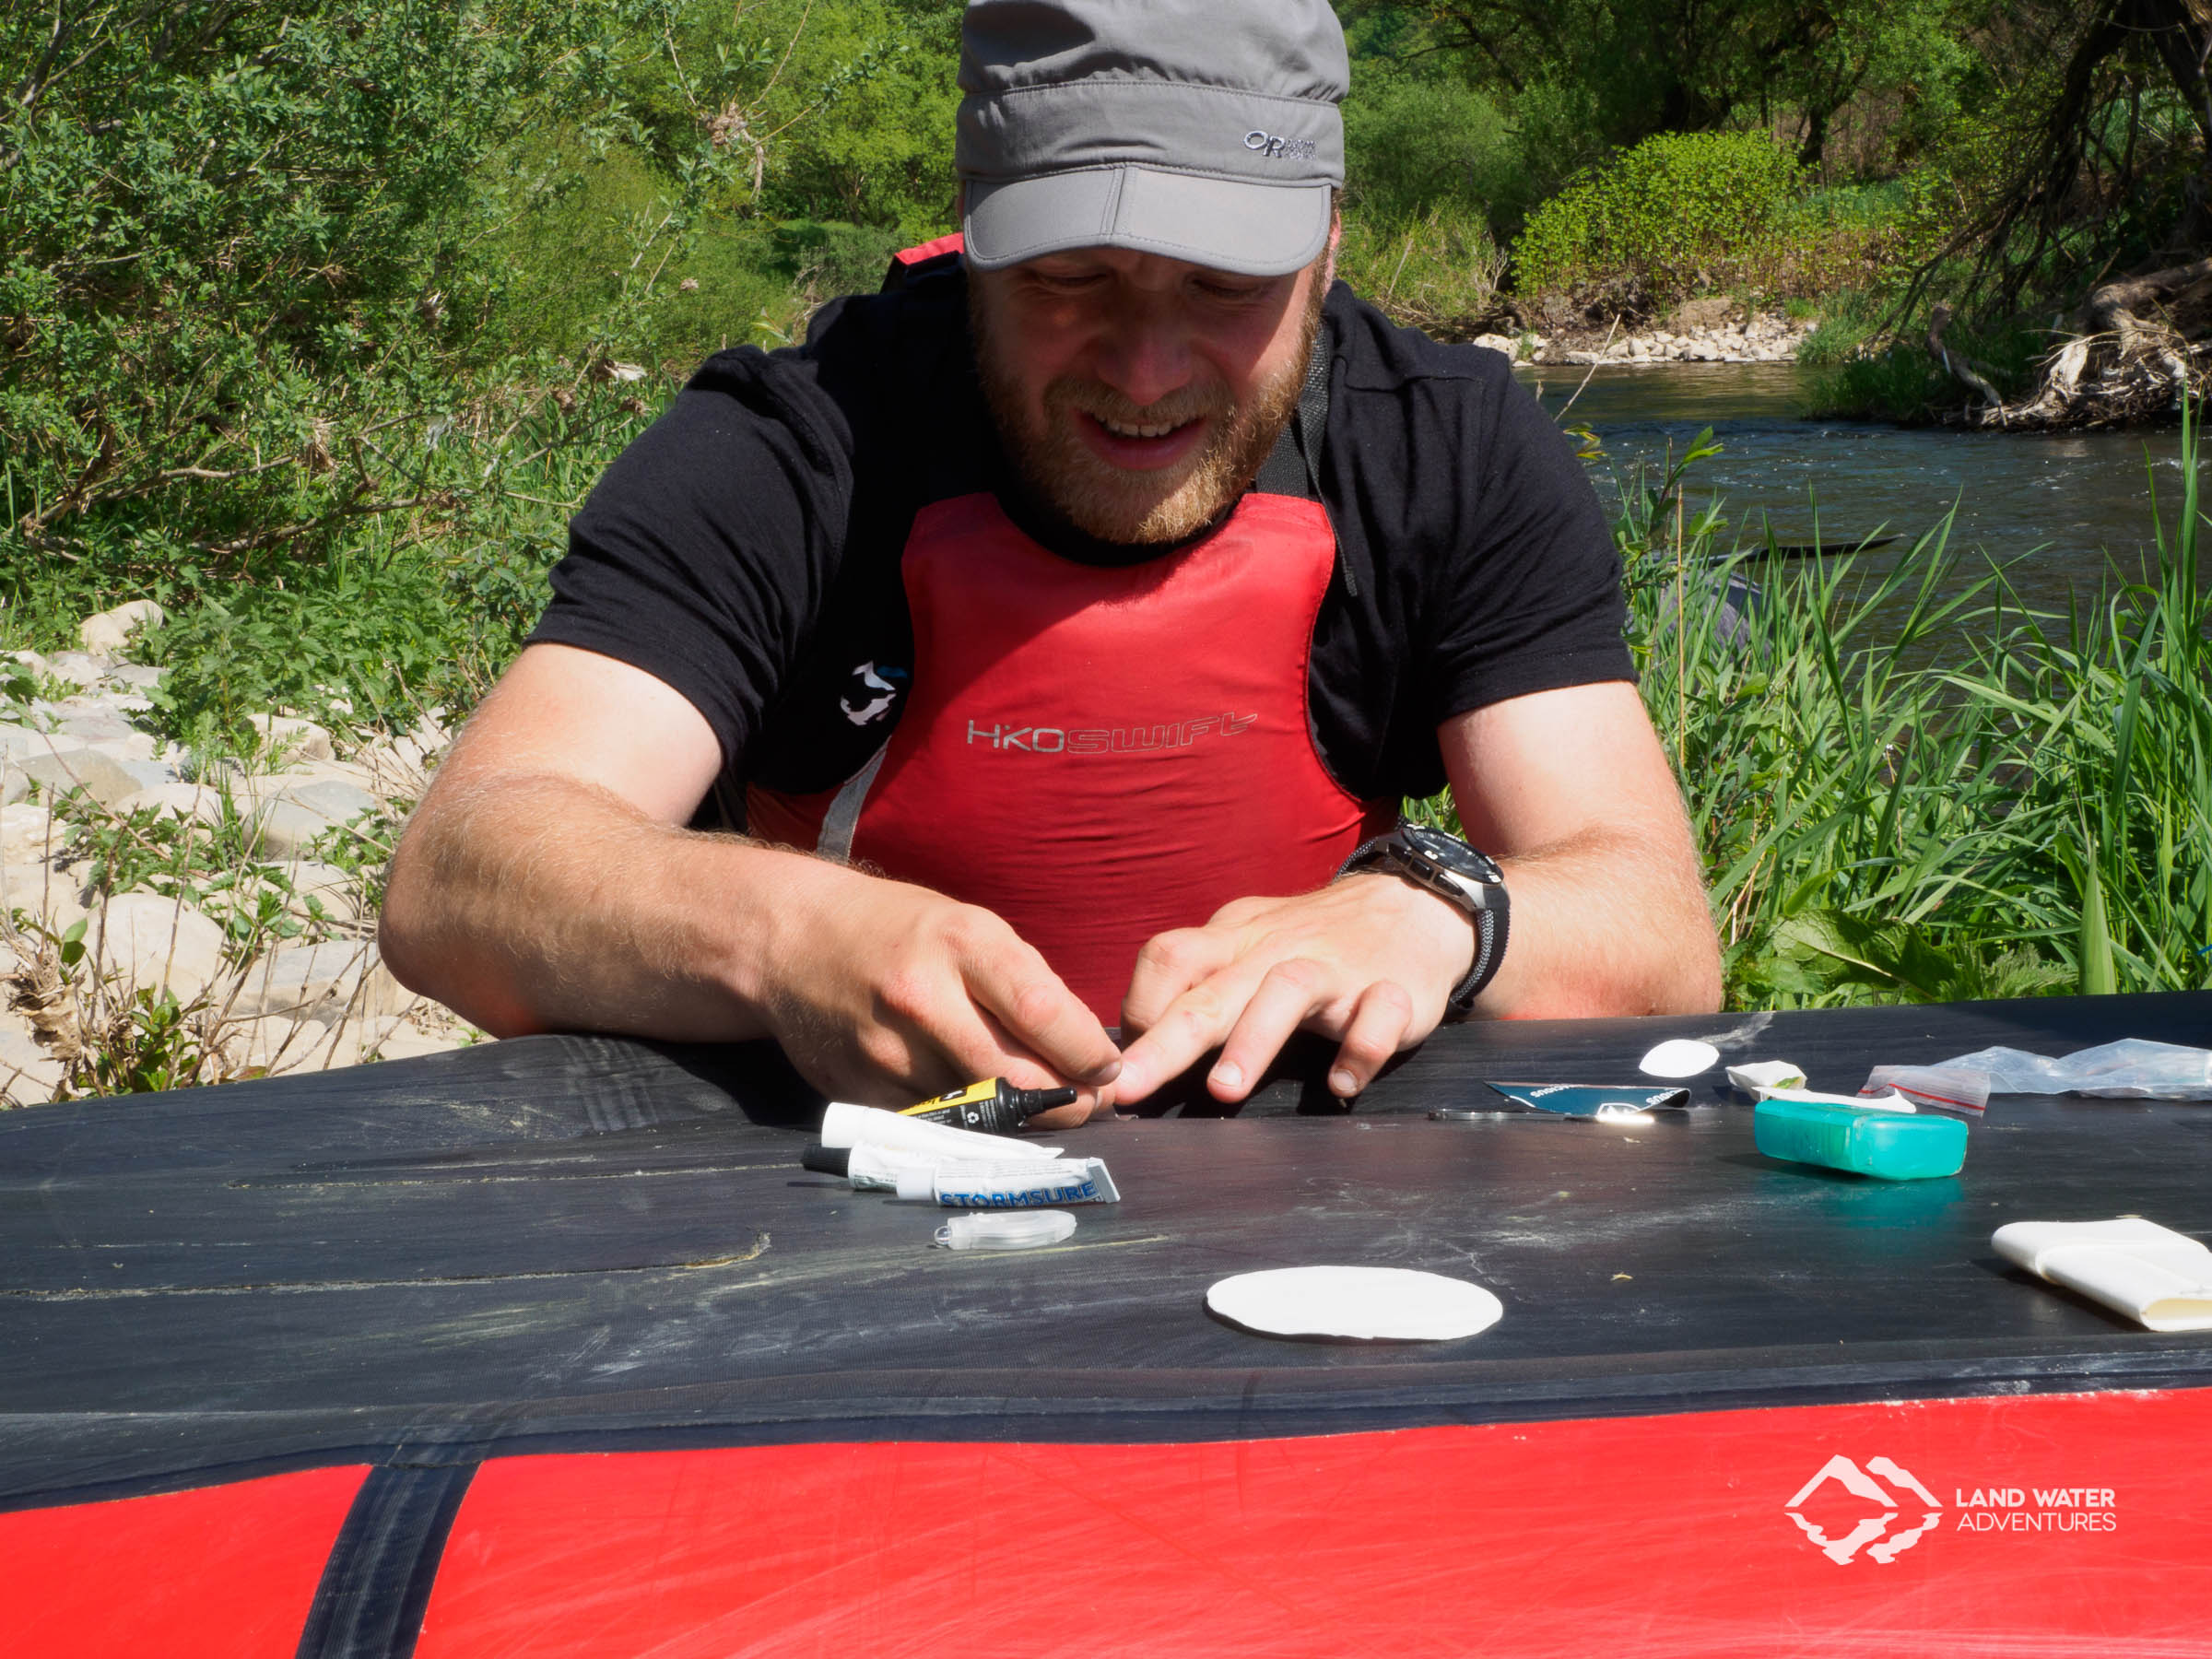 Reparaturworkshop an der Nahe 2018 © Land Water Adventures